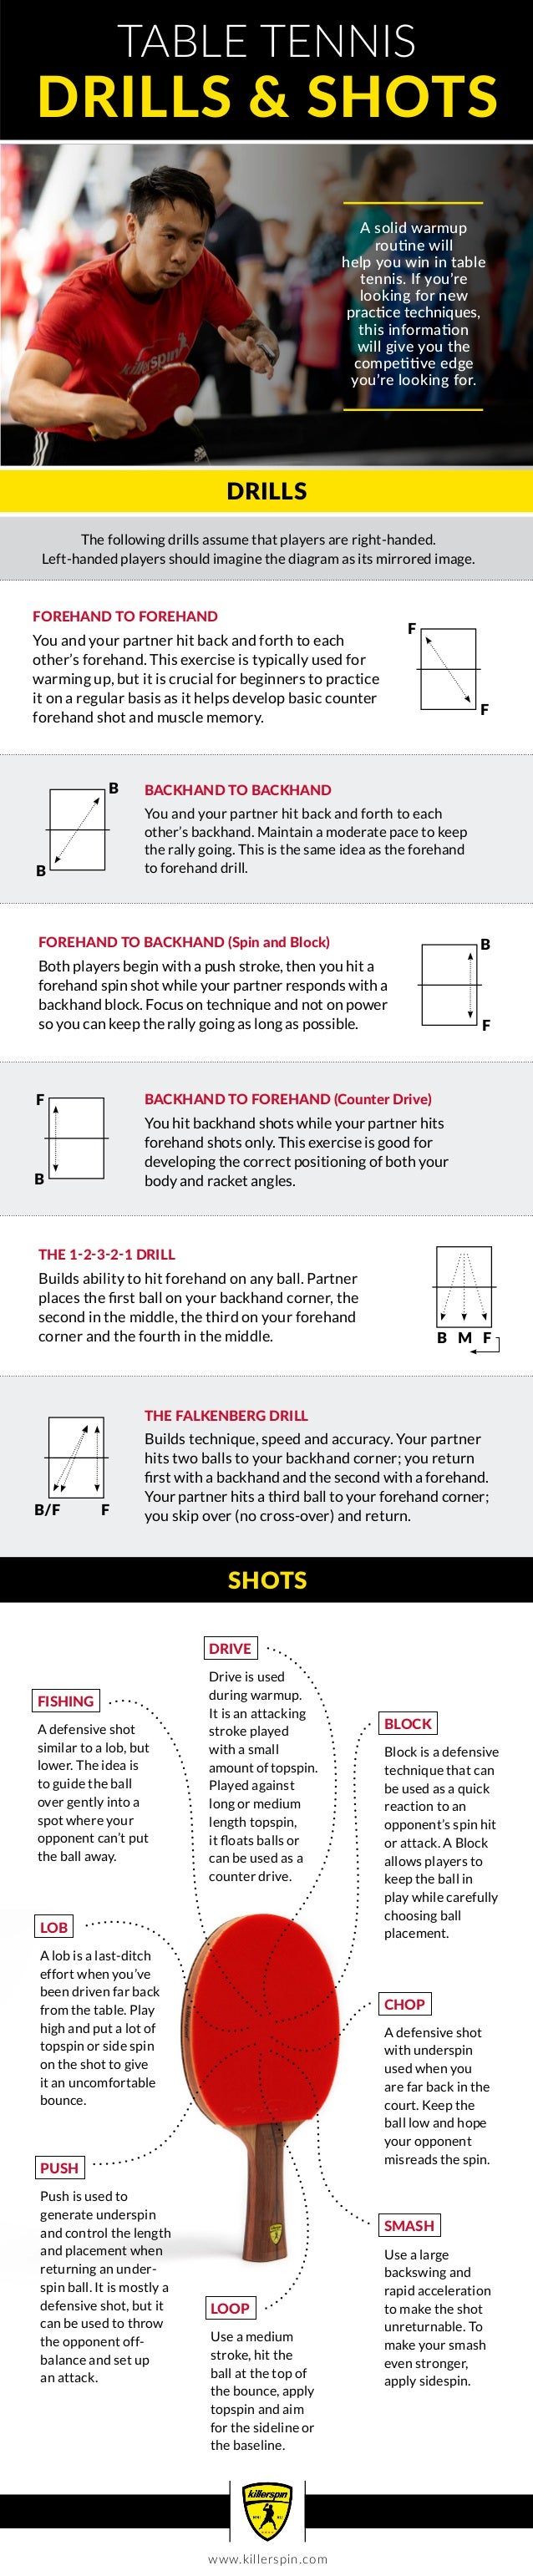 BACKHAND TO BACKHAND You and your partner hit back and forth to each other's backhand. Maintain a moderate pace to keep th...